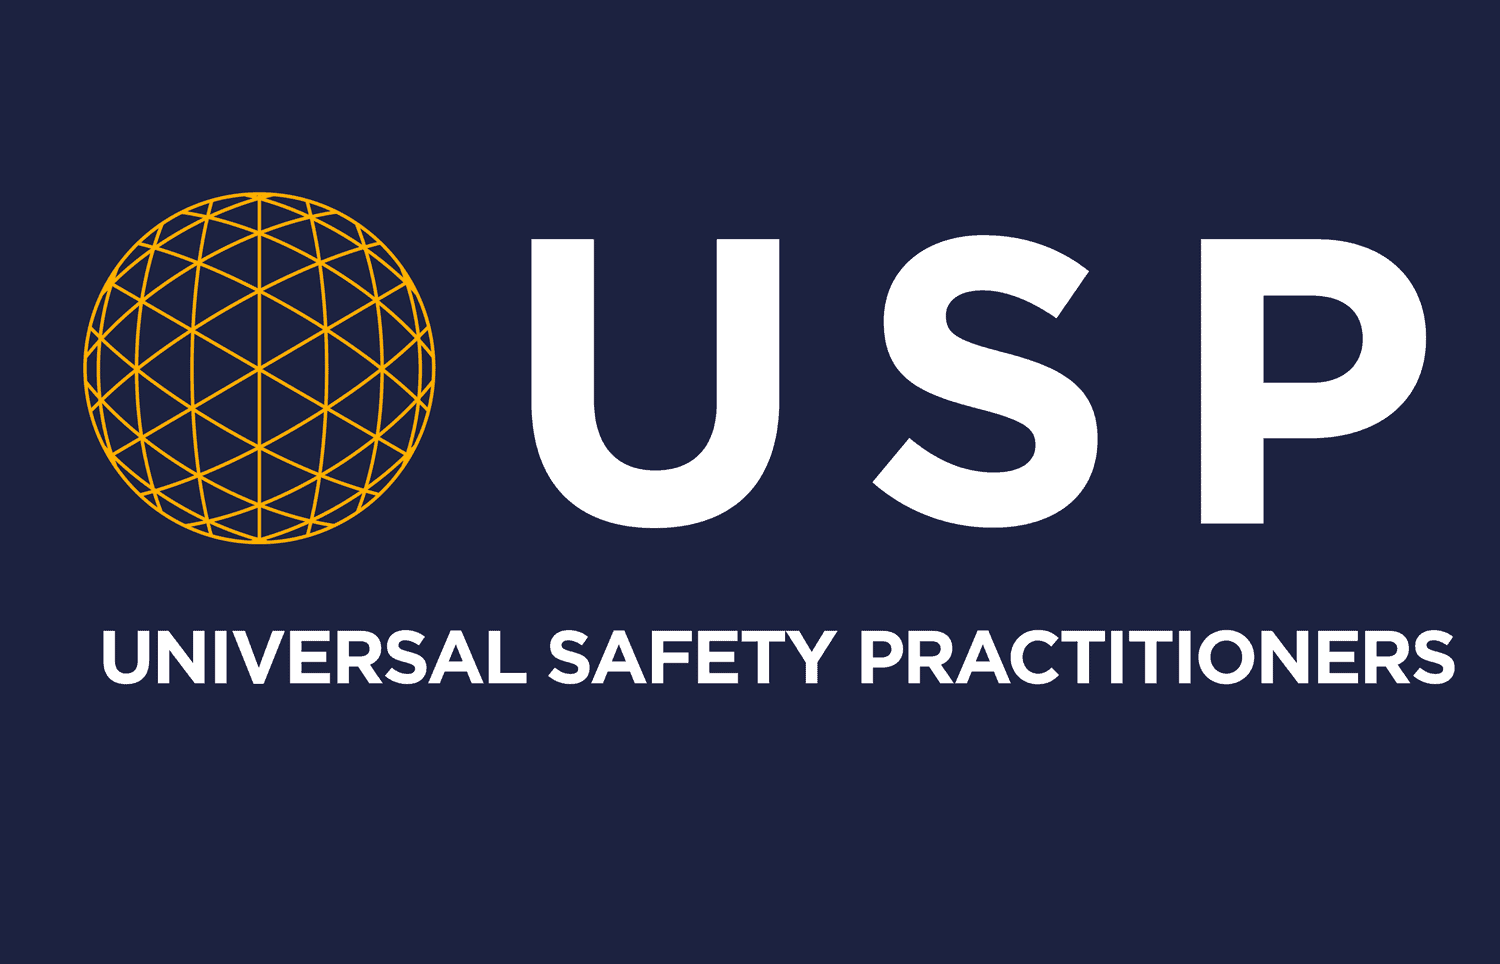 Universal Safety Practitioners